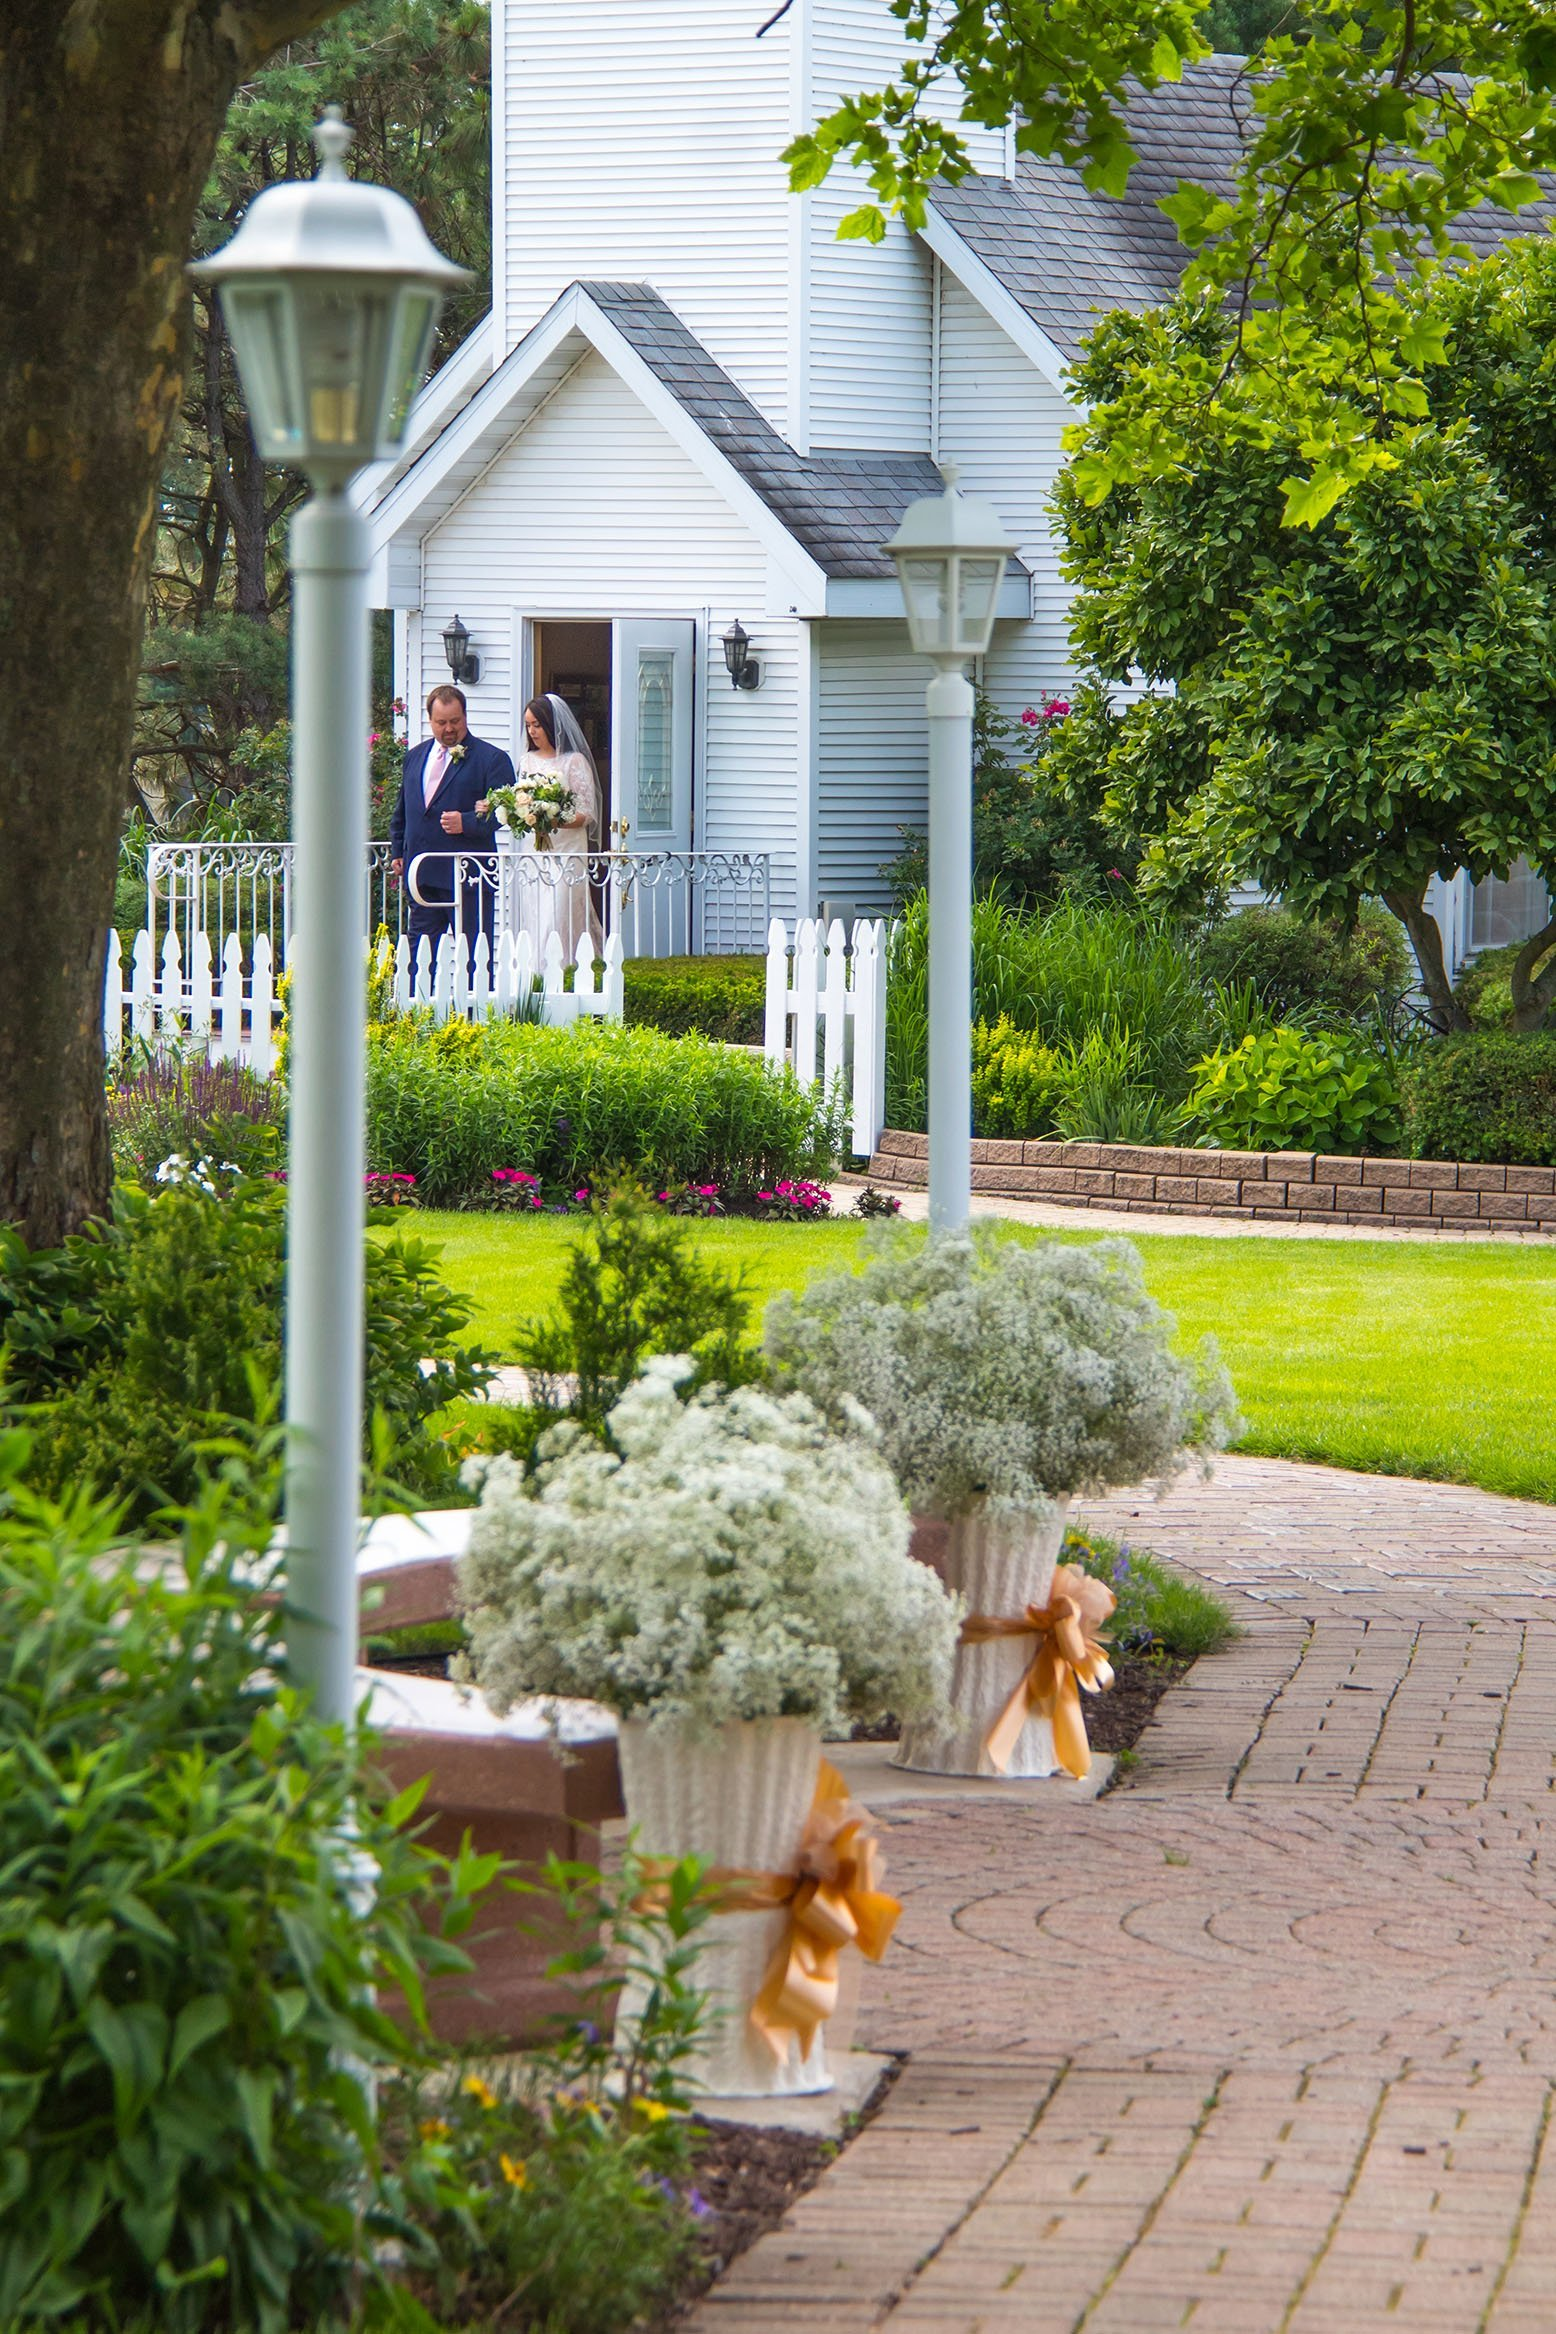 During a gazebo wedding ceremony the bridal party exits our chapel & walks down our engraved brick path.